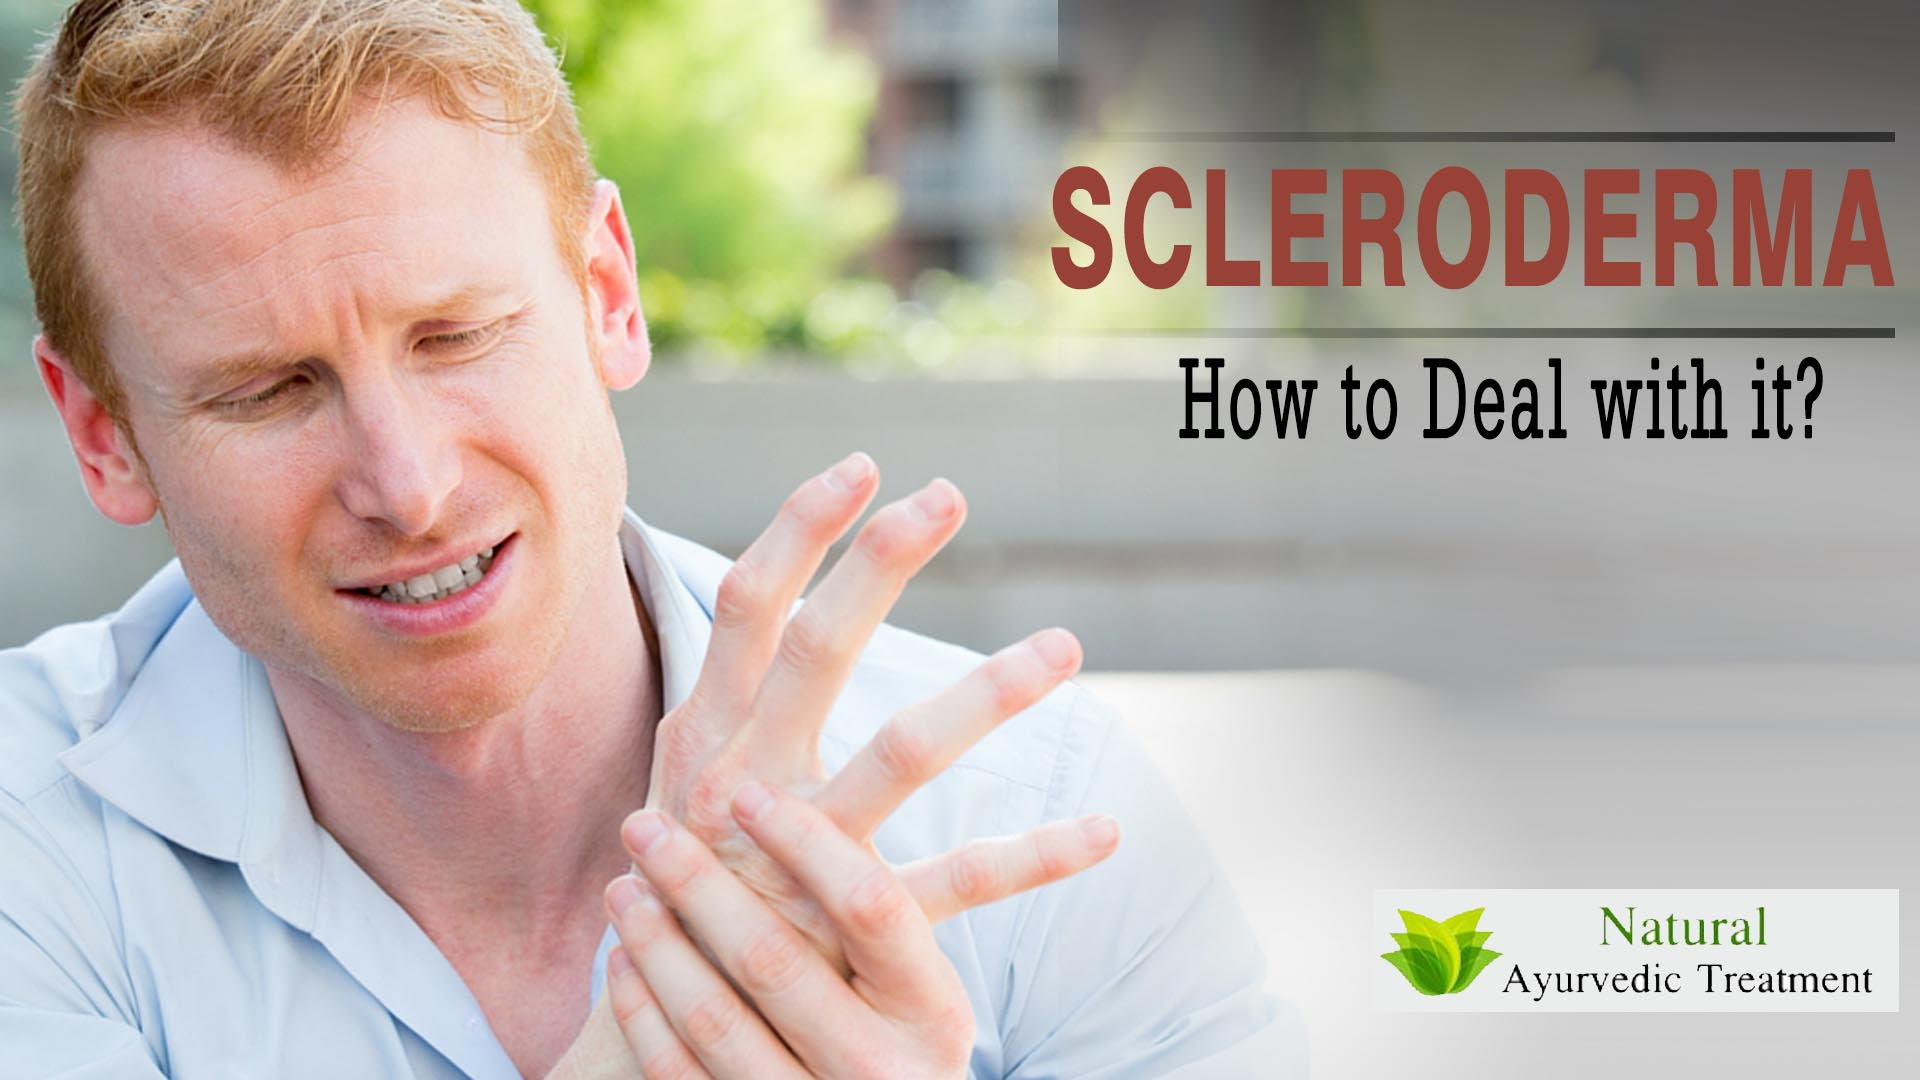 What are the Symptoms of Scleroderma and How to Deal with it?